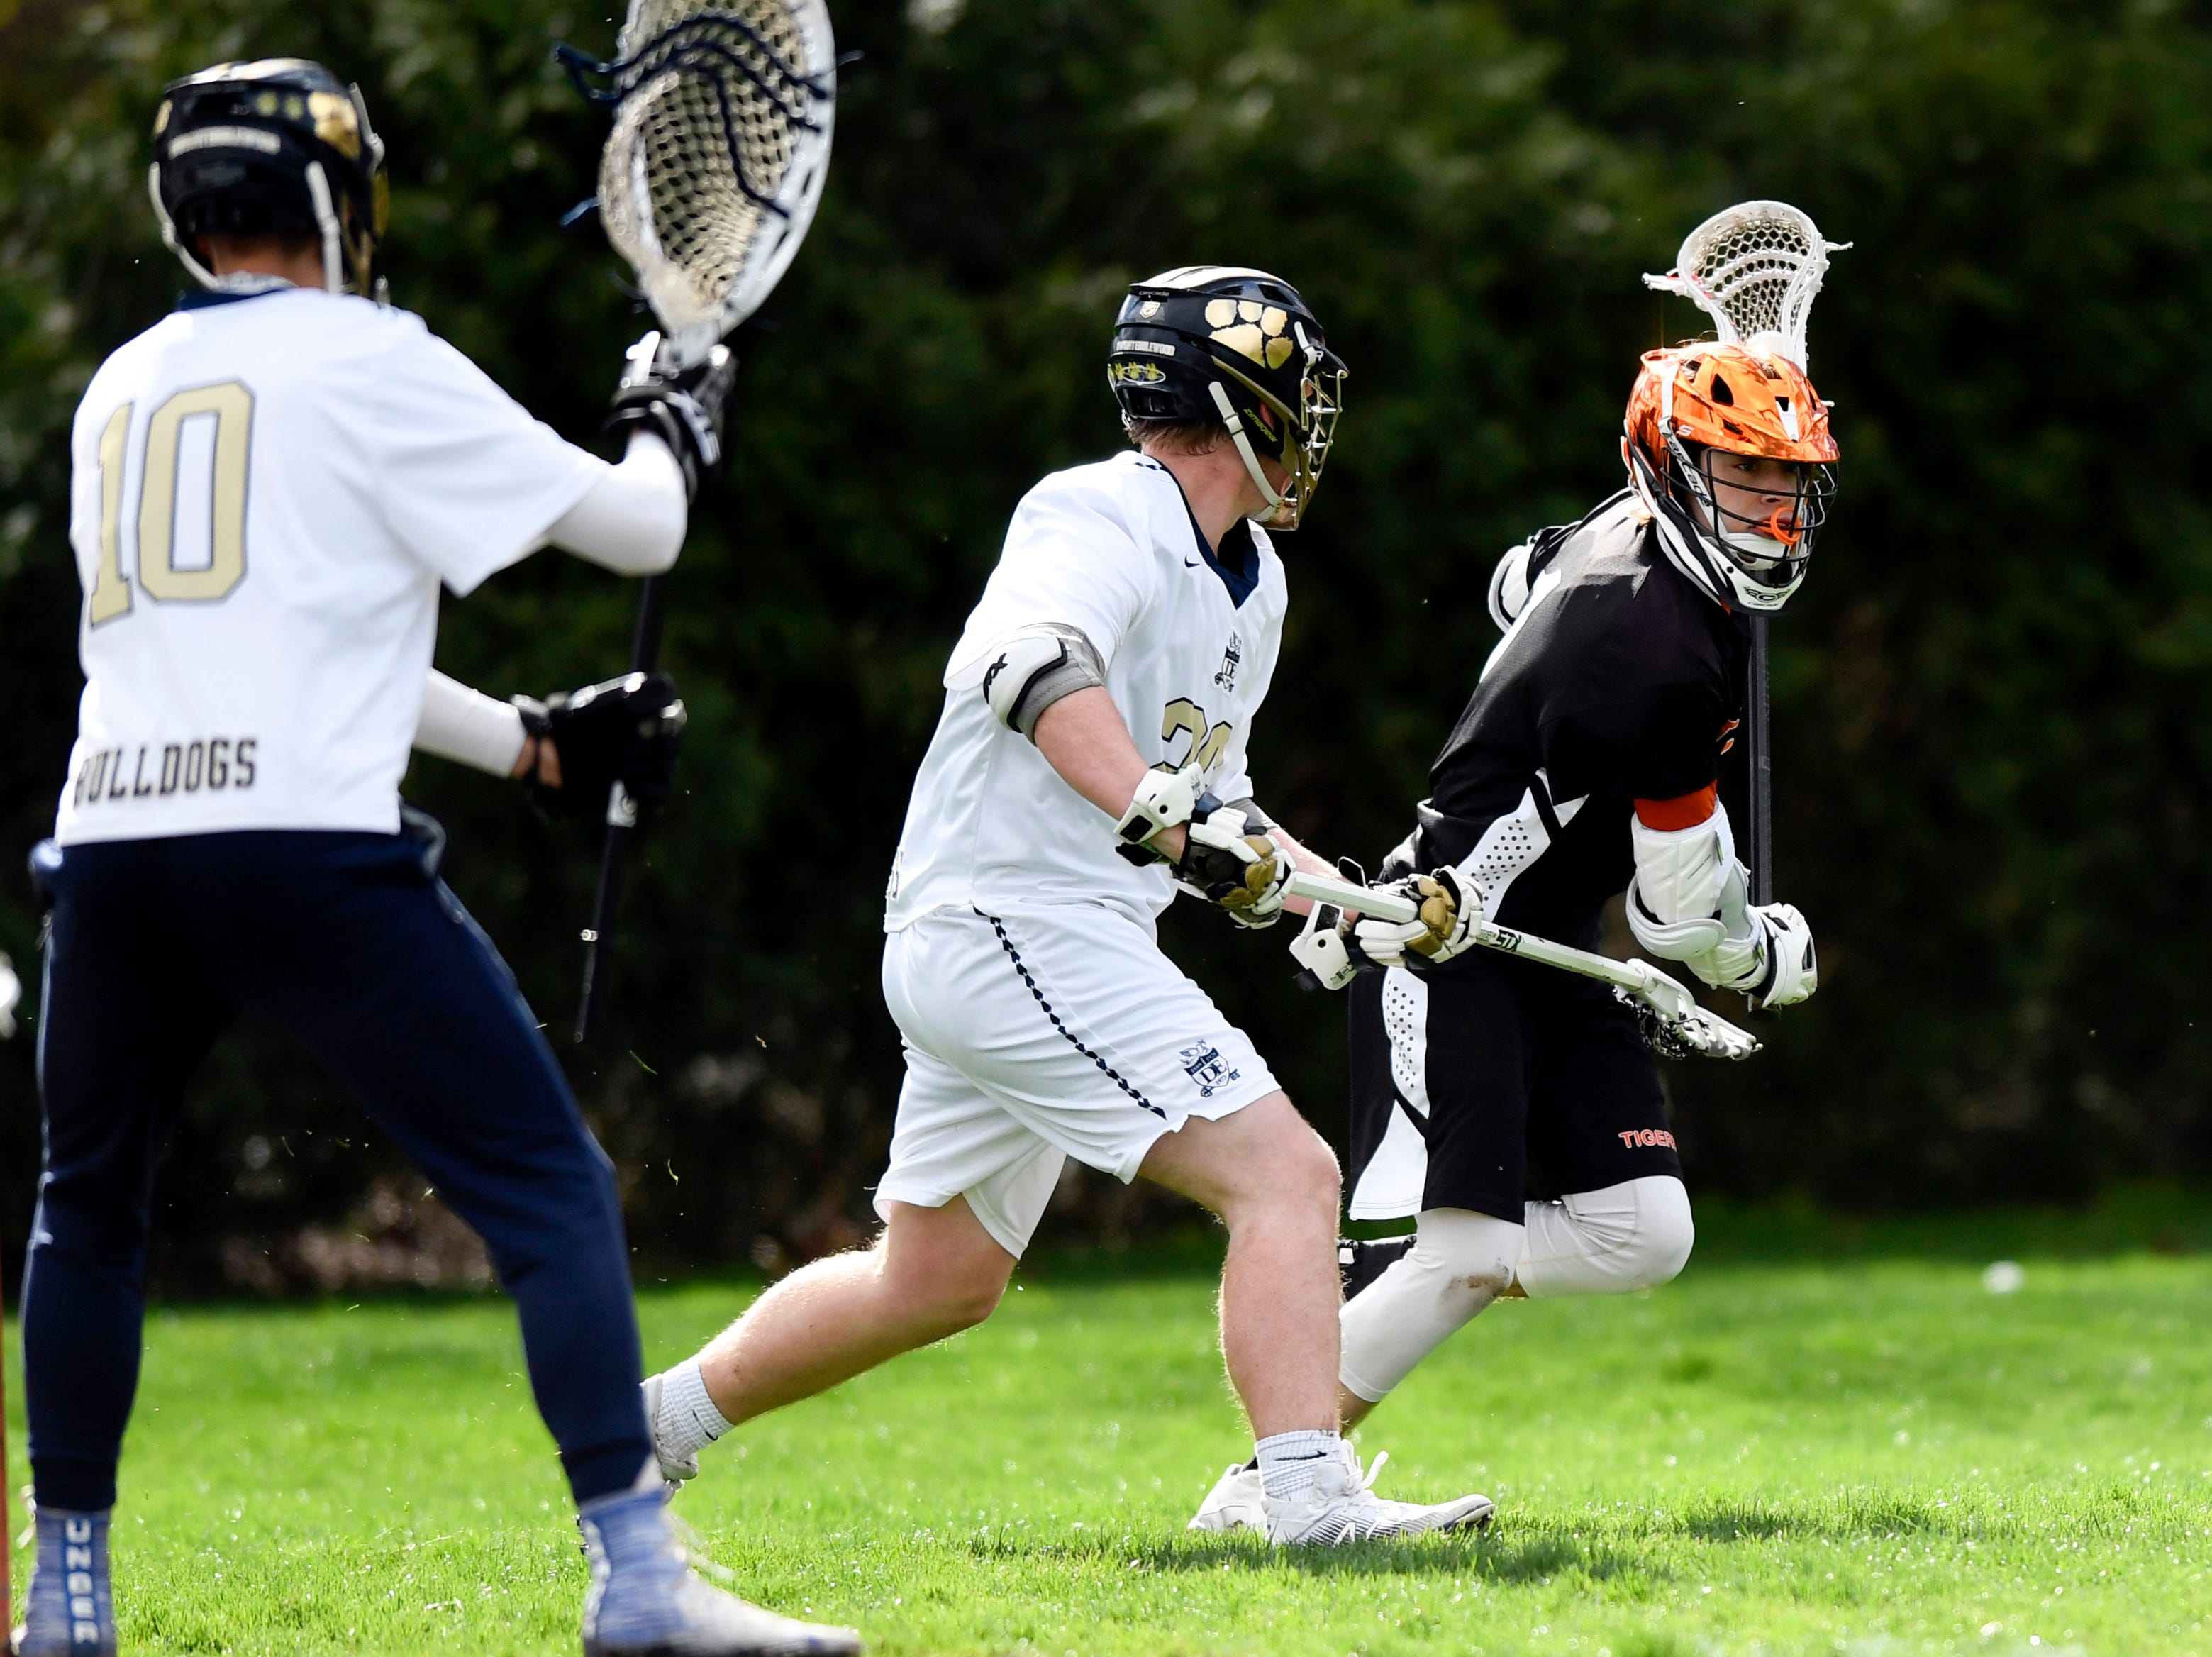 Tenafly's Austin Dome, far right, looks for a hole in the Dwight Englewood defense on Monday, April 15, 2019, in Englewood.